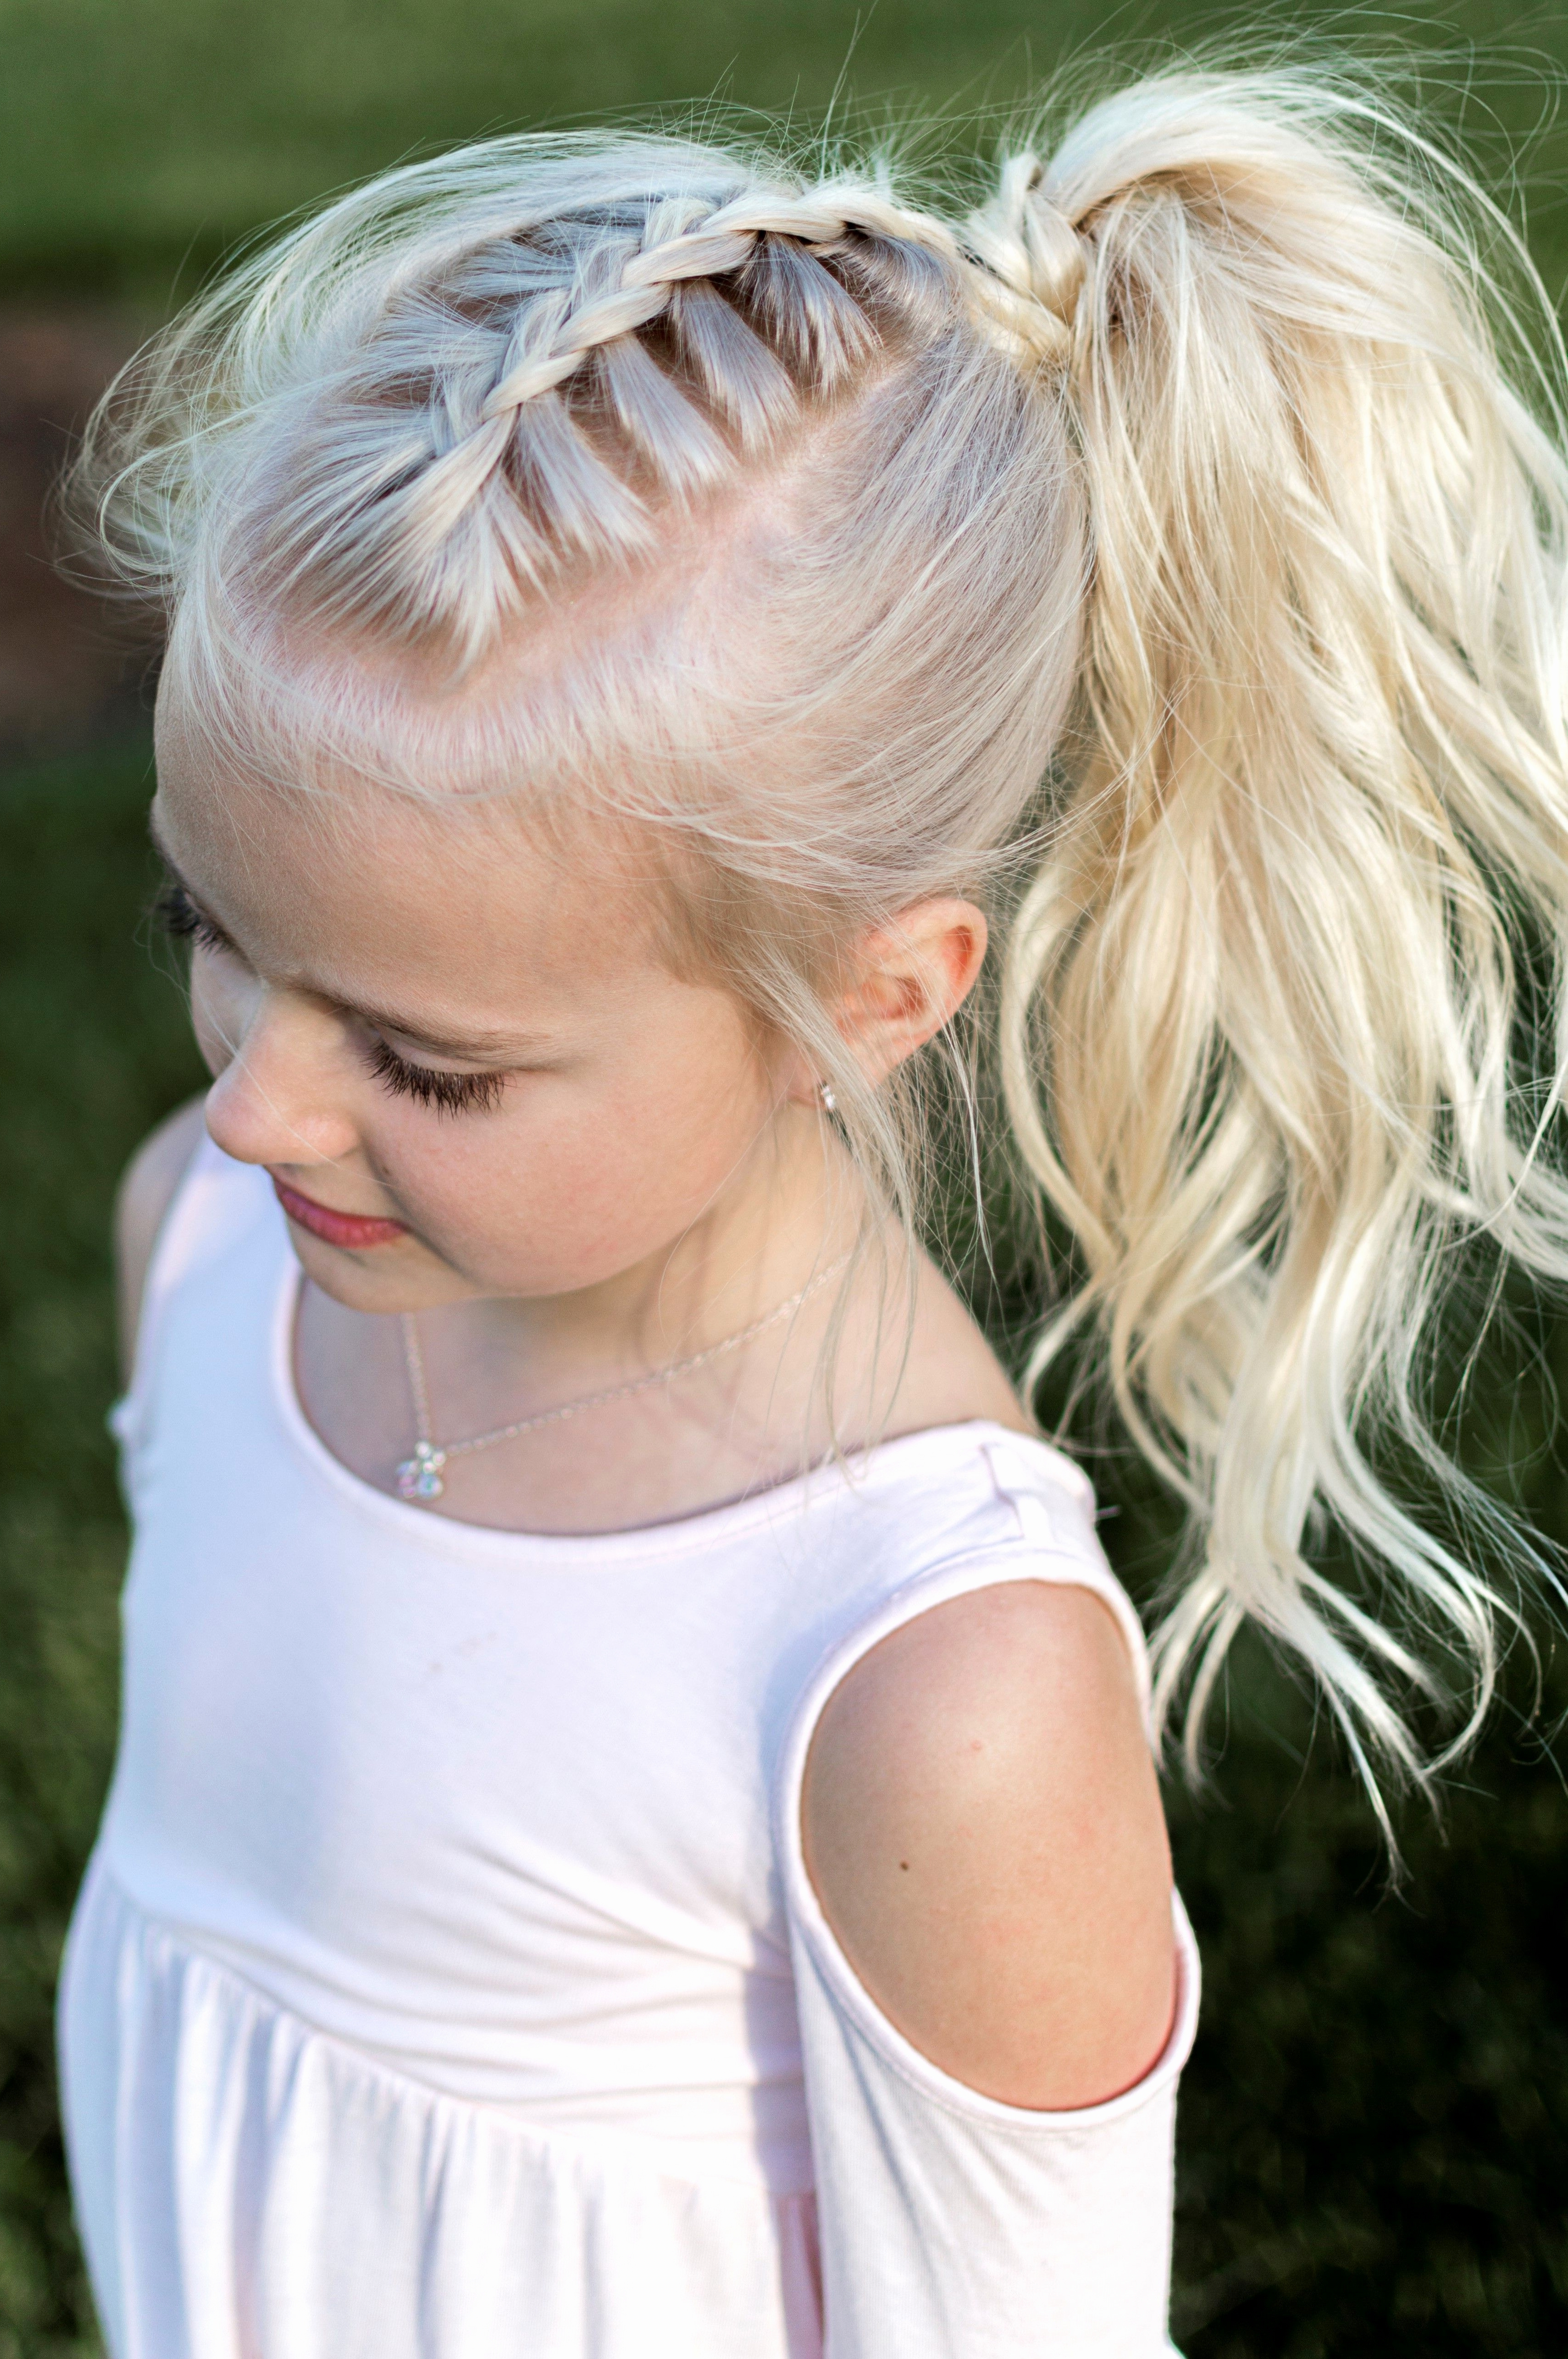 Preferred Braided Hairstyles For White Girl Regarding Hairstyles For White Women Fresh Little Girl Hairstyle French Braid (View 9 of 15)